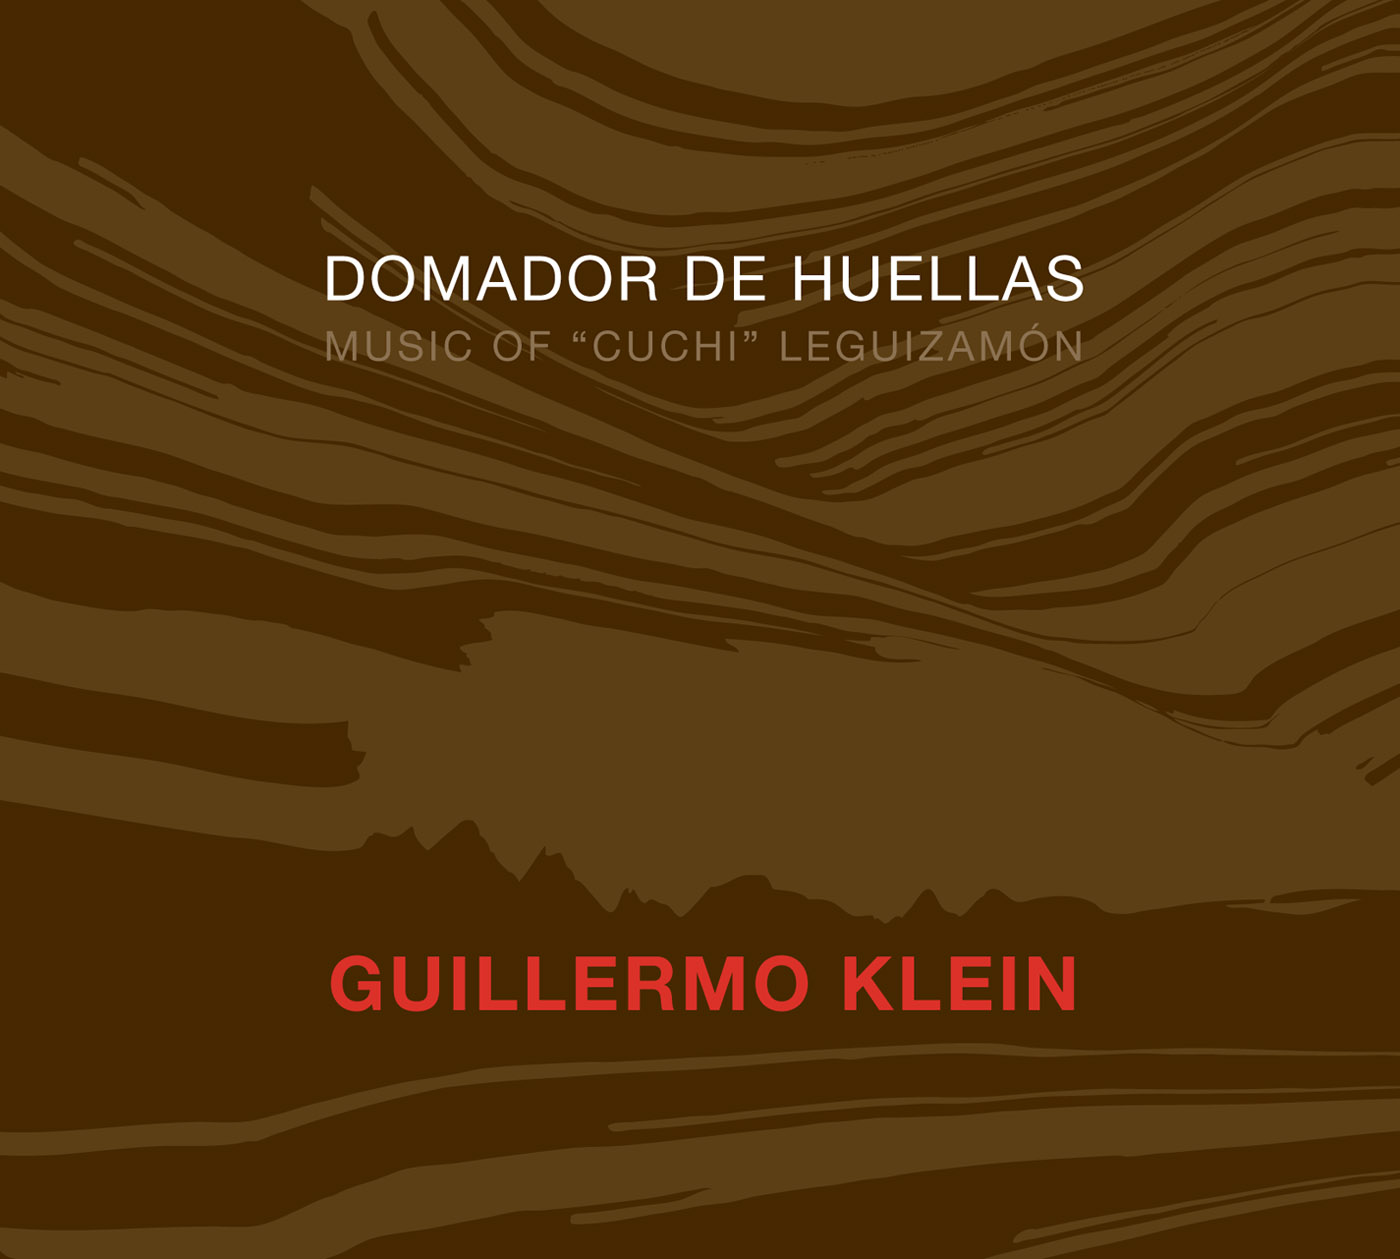 Domador de Huellas by Guillermo Klein cover